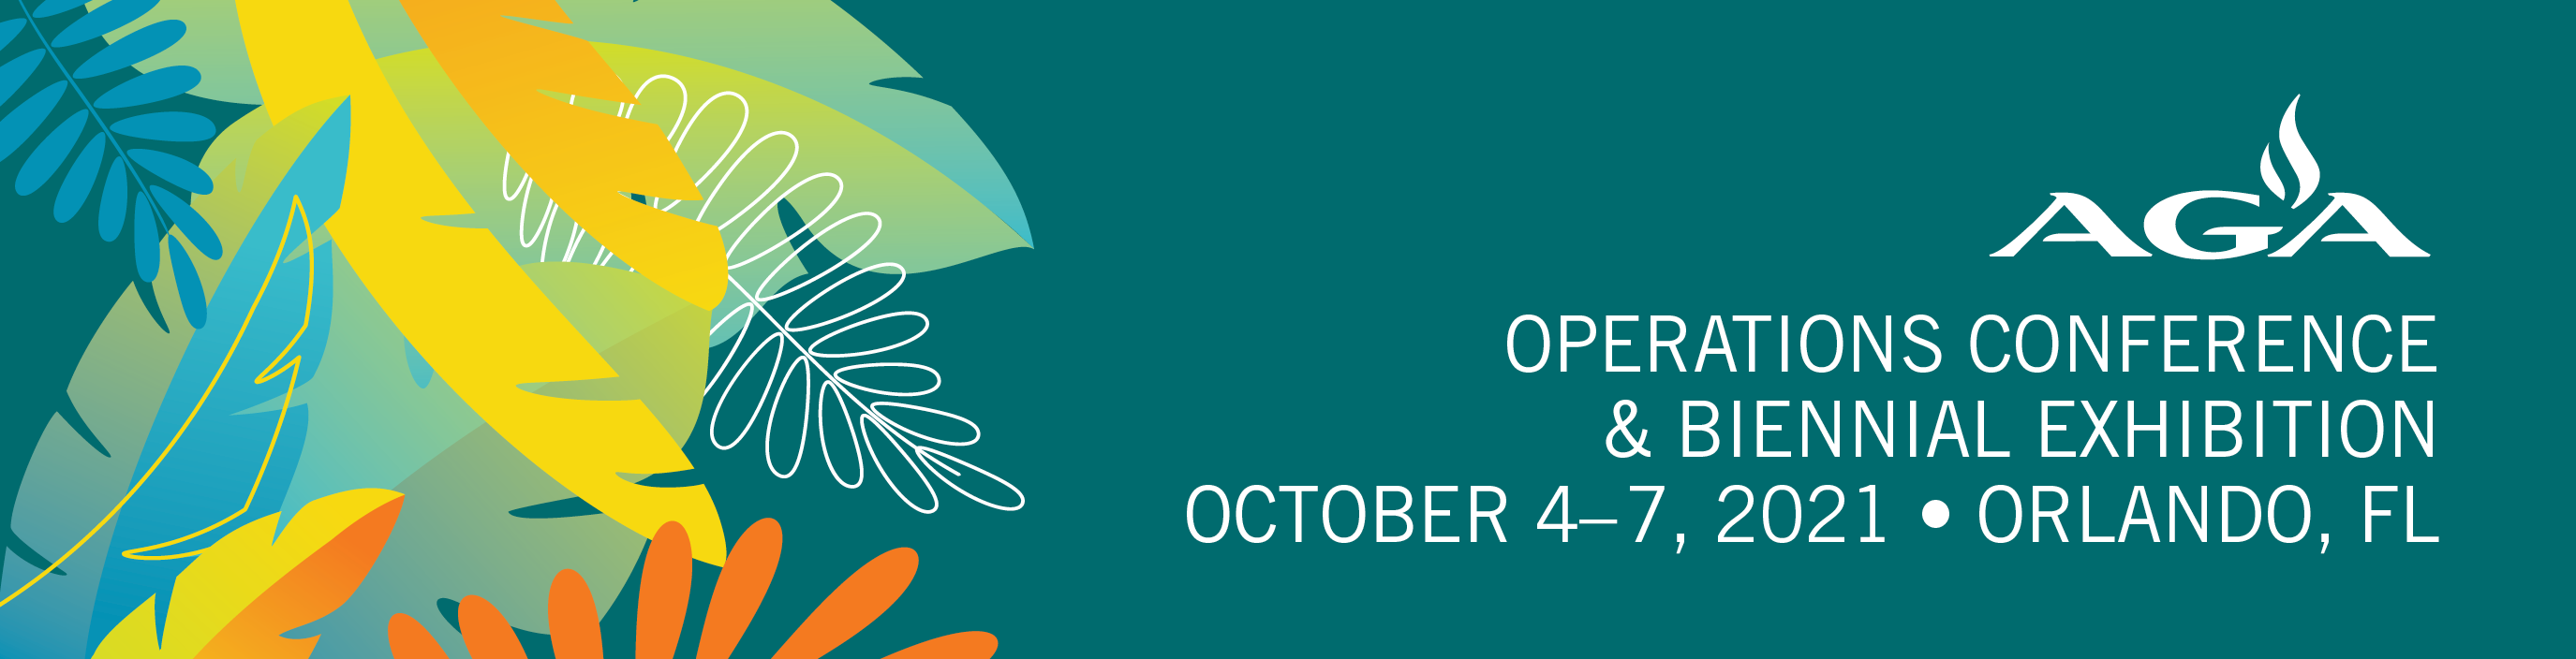 2021 AGA Operations Conference & Biennial Exhibition & Fall Committee Meetings *